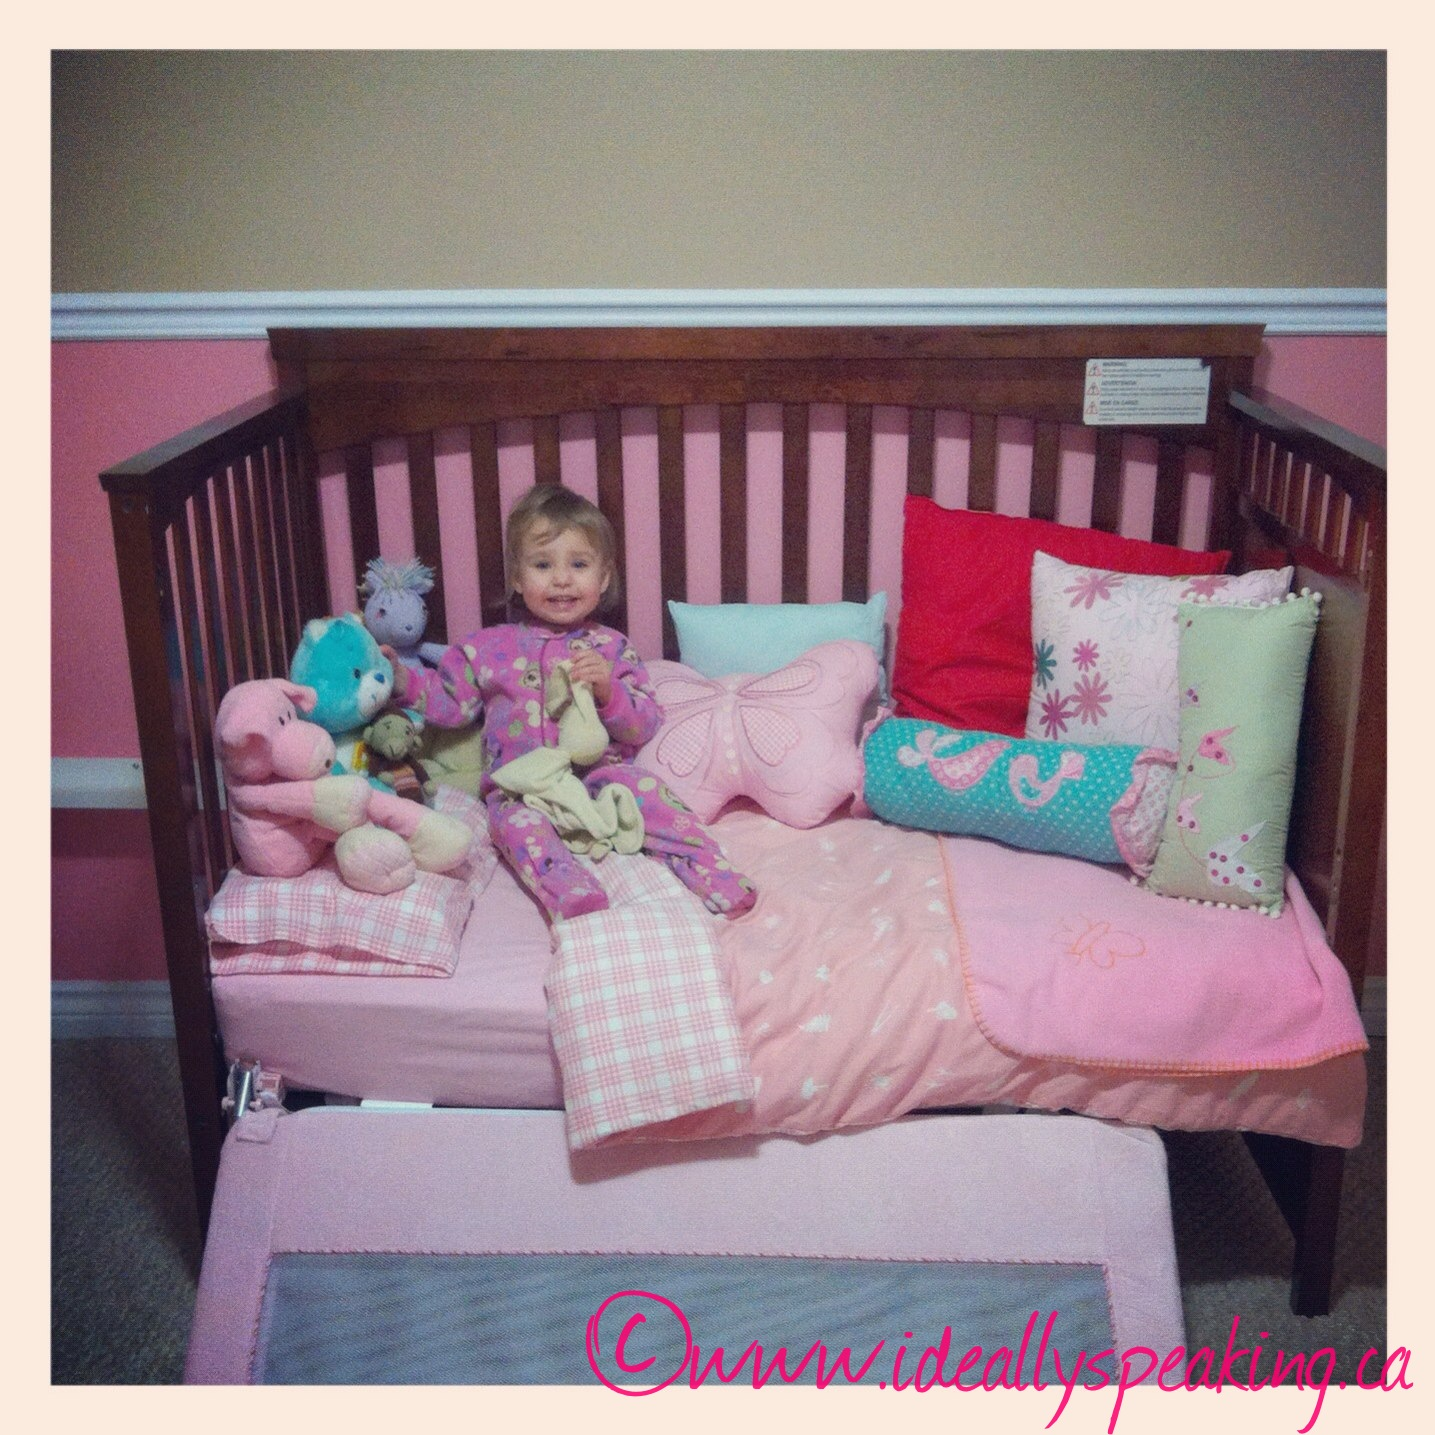 toddler, toddler daybed, transition from crib, parenting,